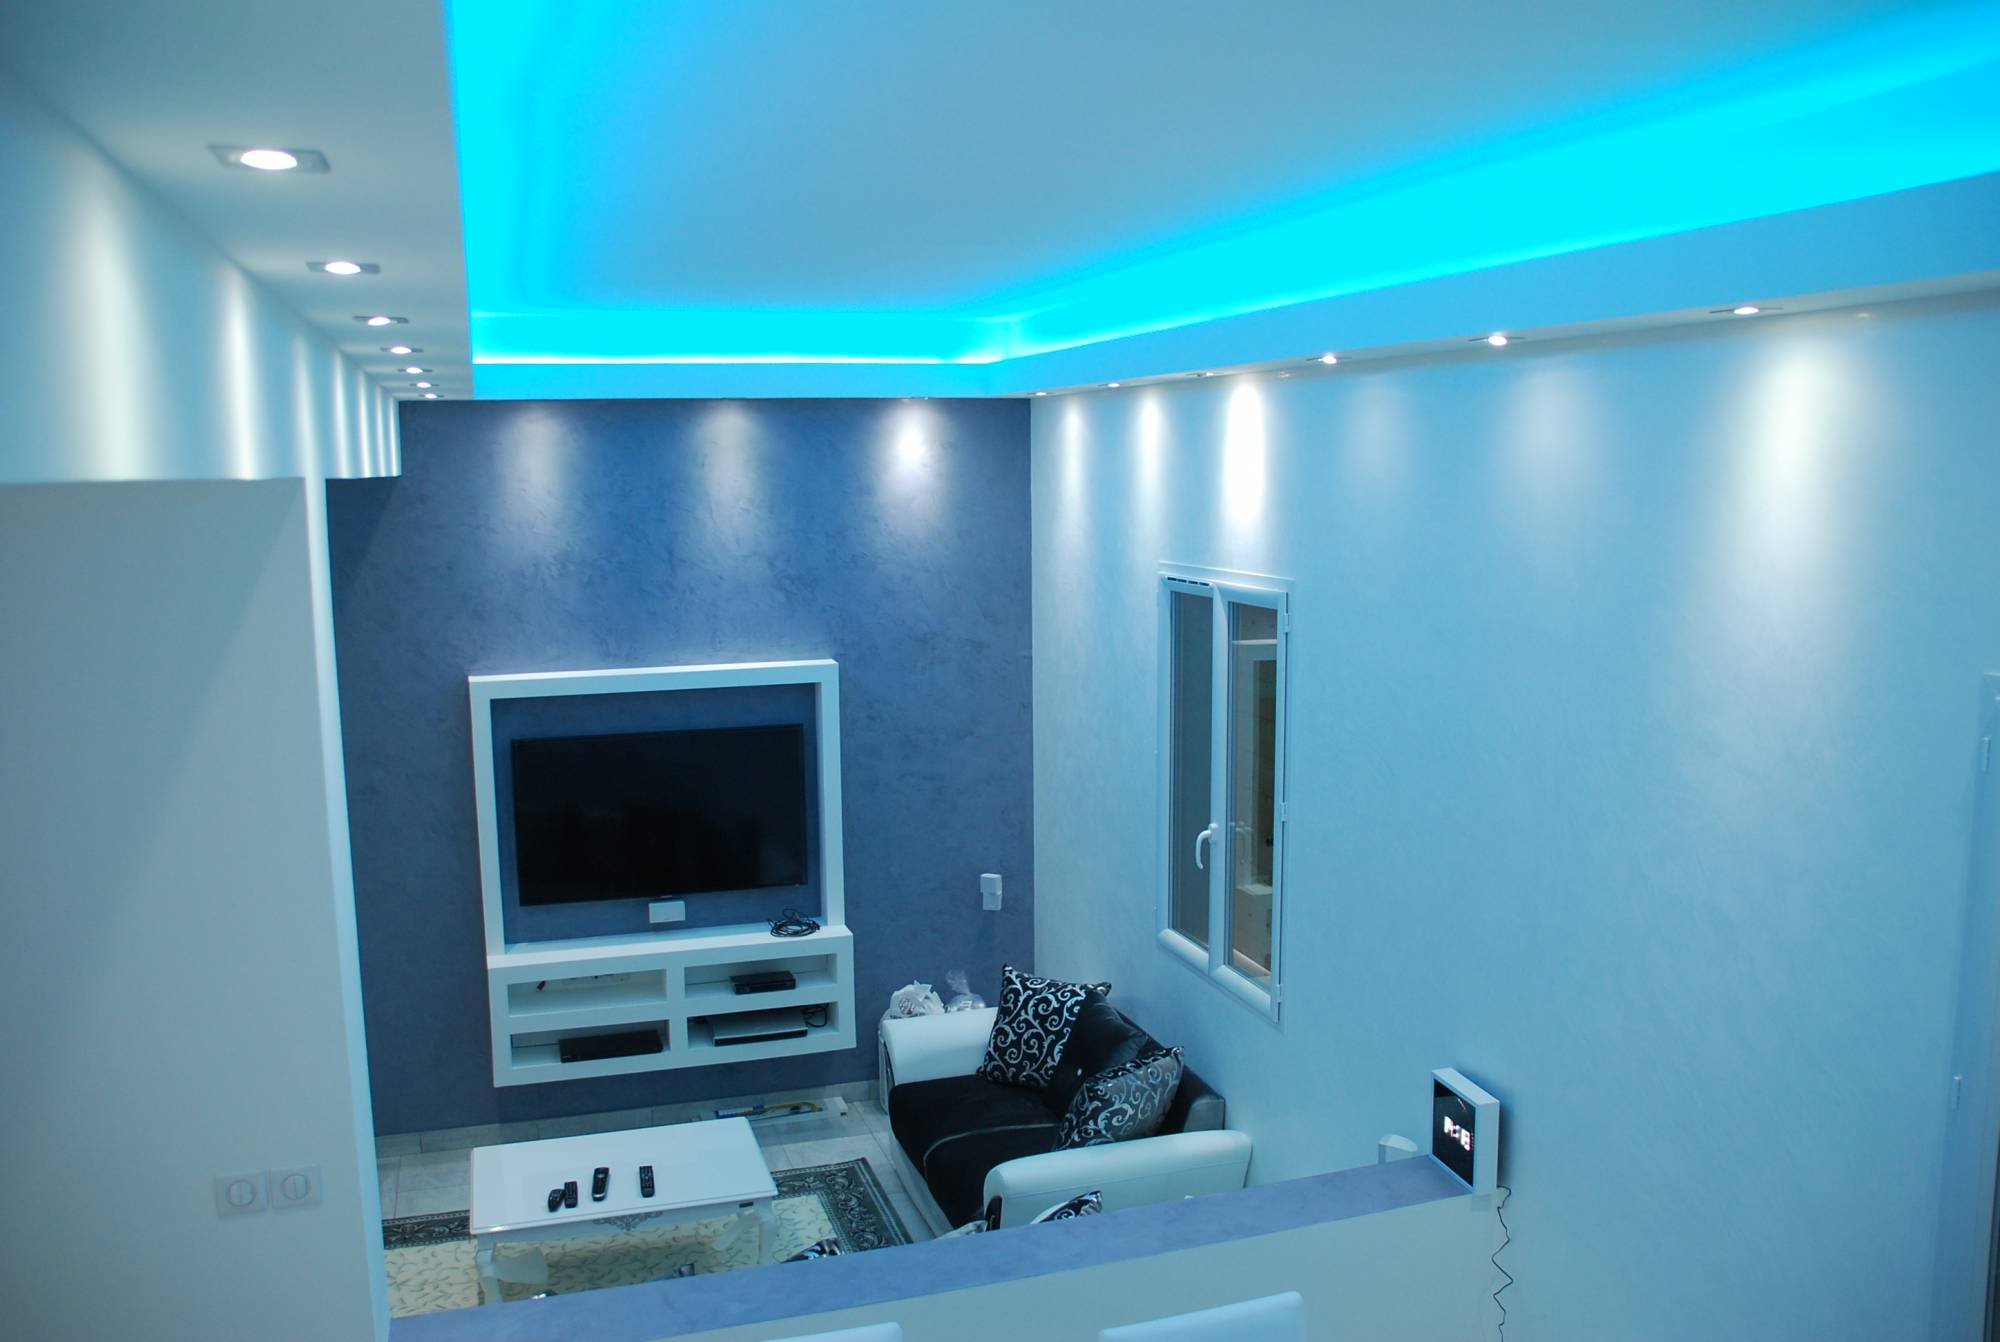 projet ruban led dans faux plafond forum sur les led oled et eclairage. Black Bedroom Furniture Sets. Home Design Ideas